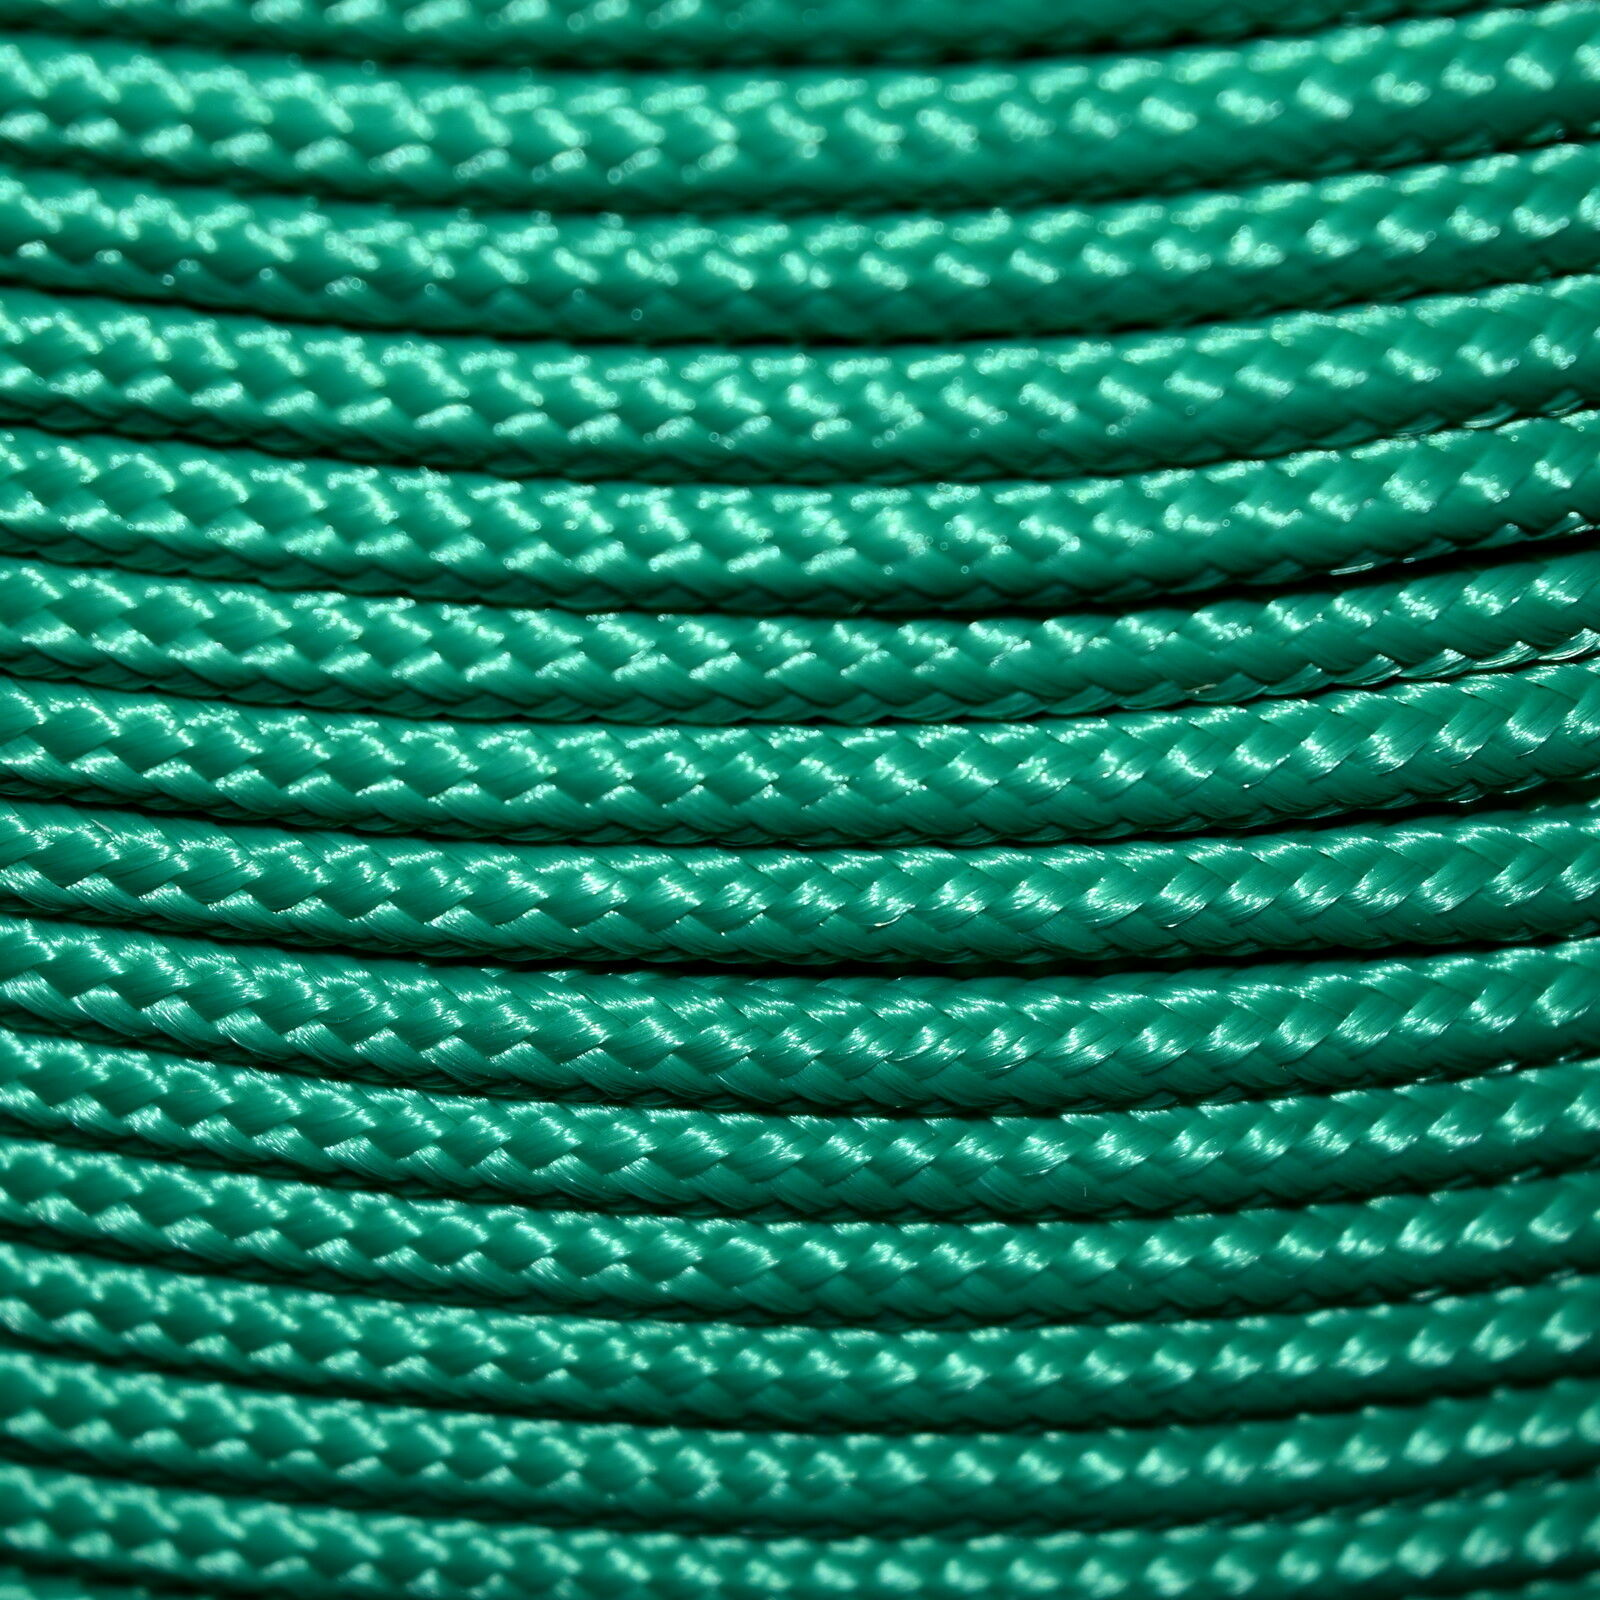 Polypropylene Rope Braided Cord Woven Twine Boating Camping Climbing - Green